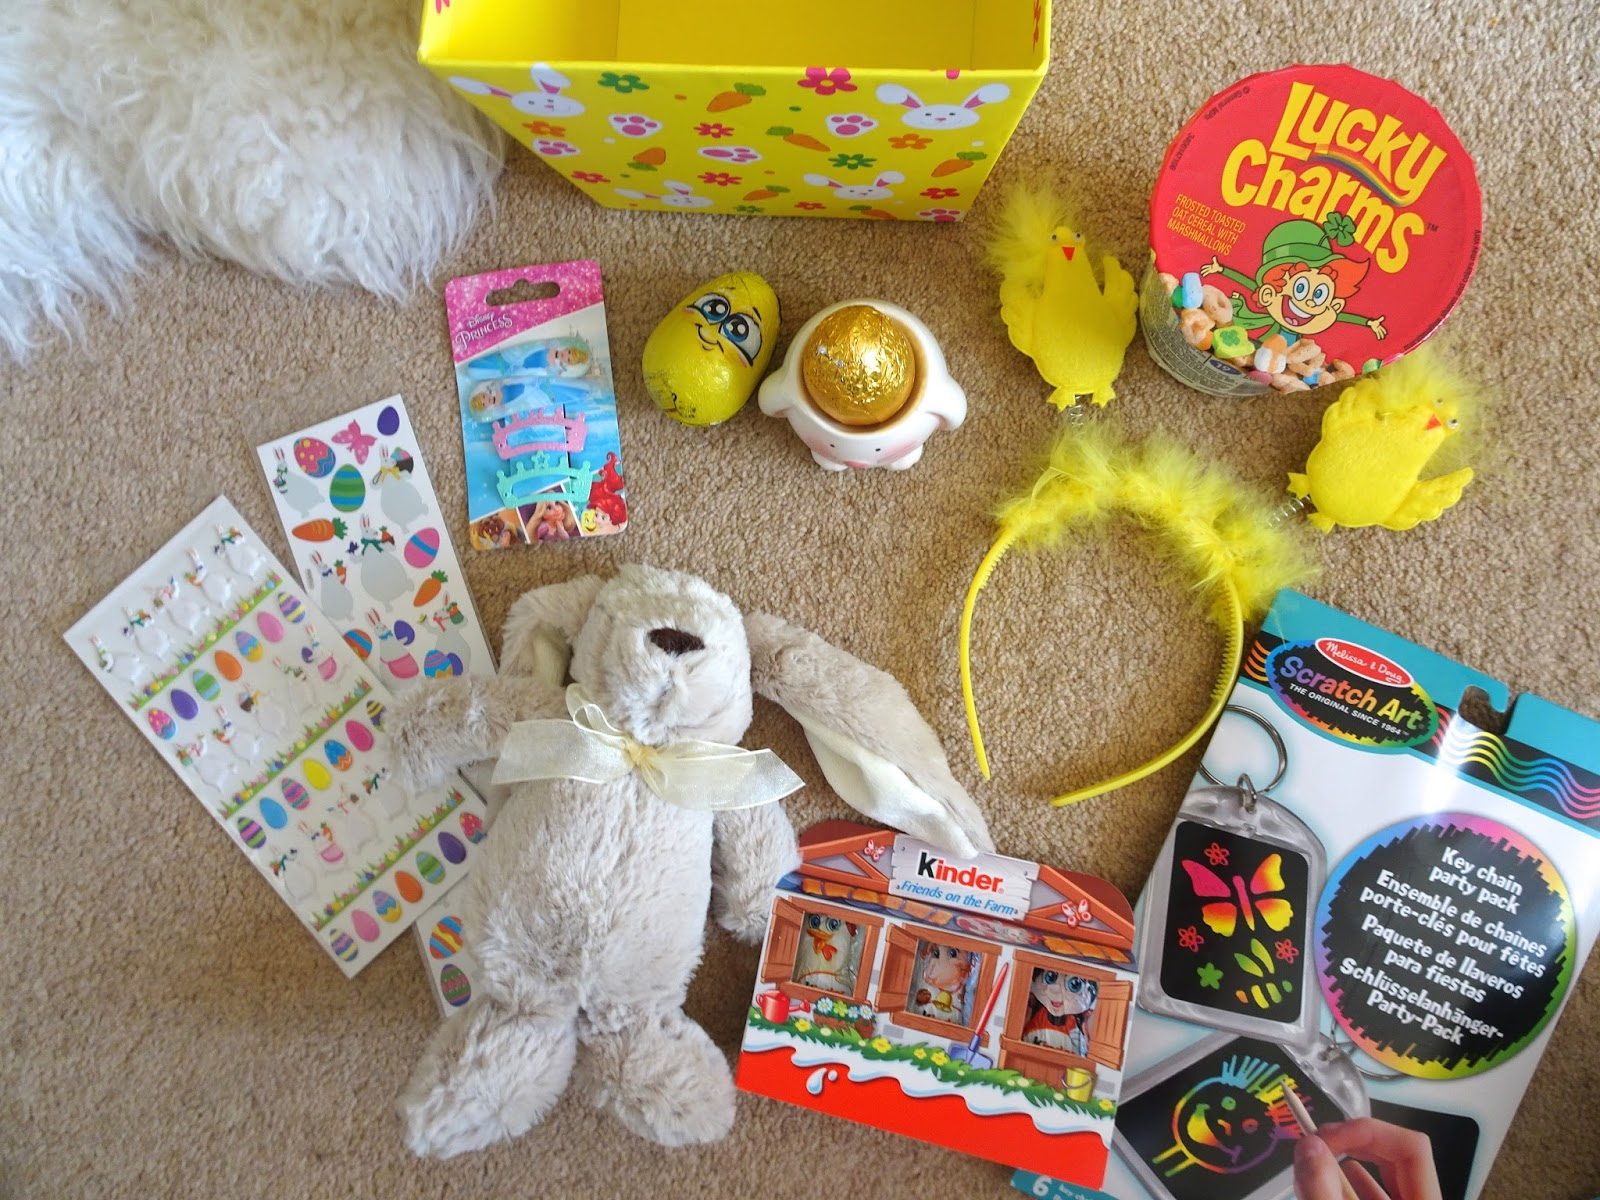 White apron poundland -  She Has Some Kinder Chocolate Treats A Couple Of Larger Eggs One Has A Toy In It And The Other Is The Golden Popping Candy Egg Both From Poundland